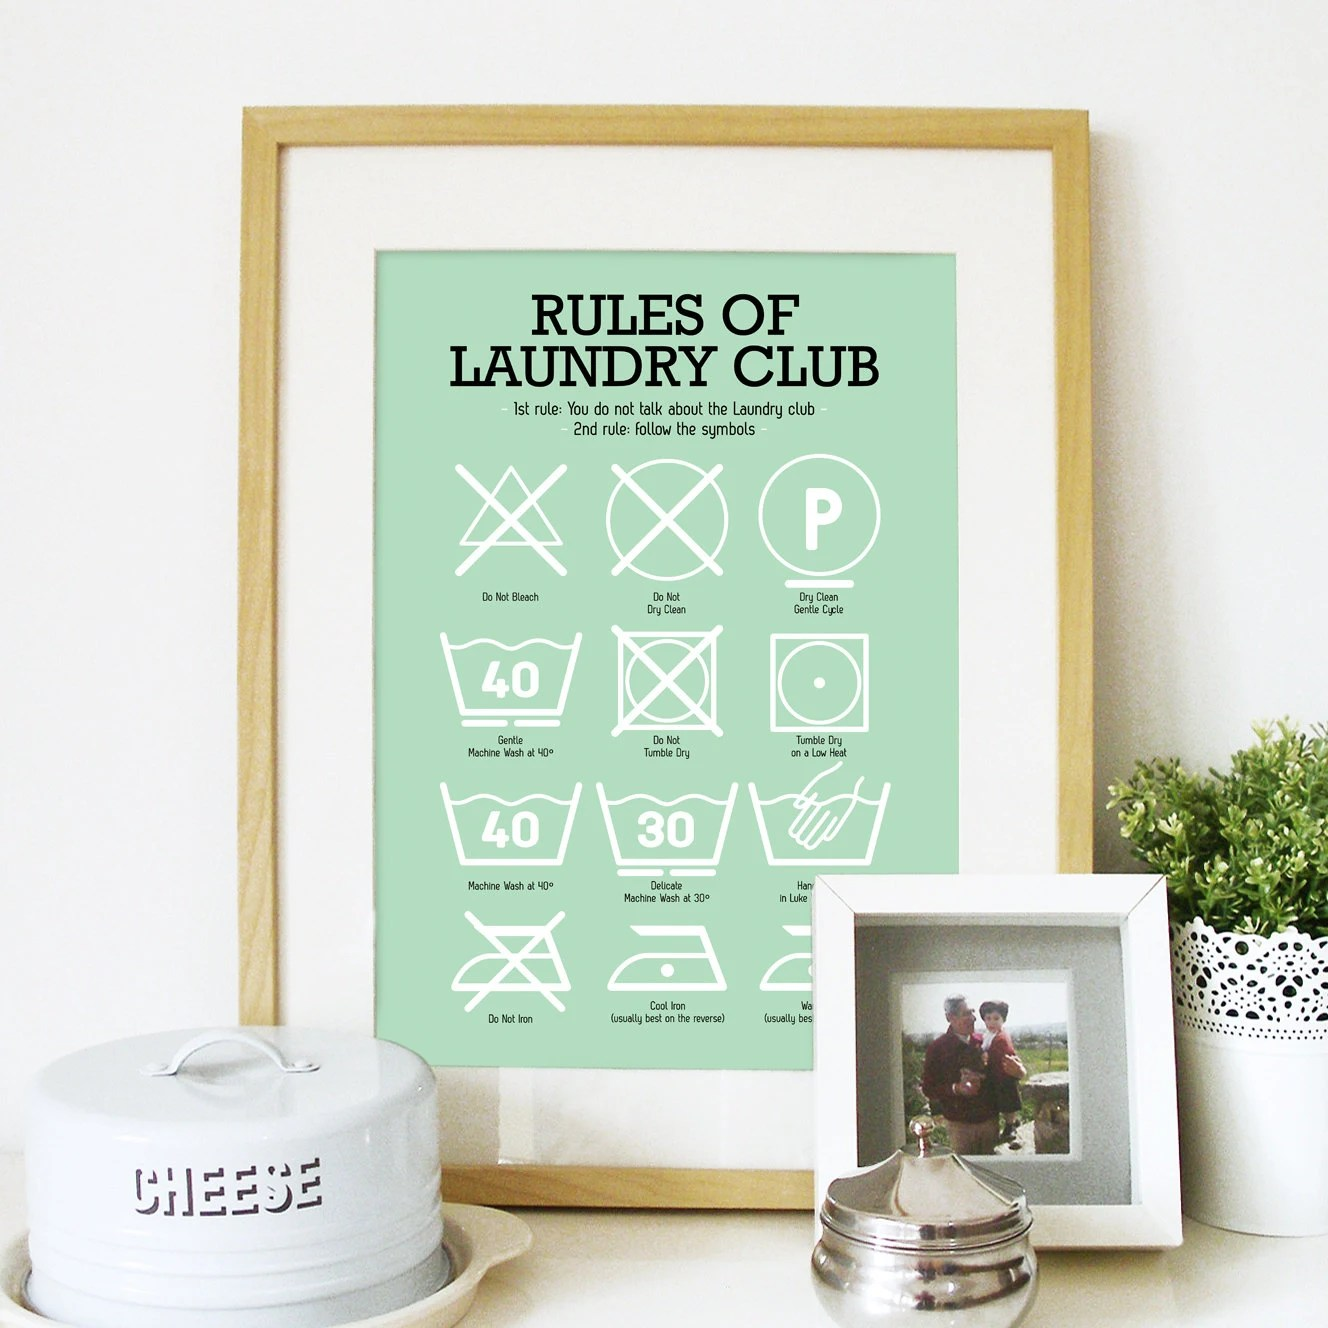 Decorative Laundry Items Laundry Room Poster With Laundry Pictograms In Light Mint